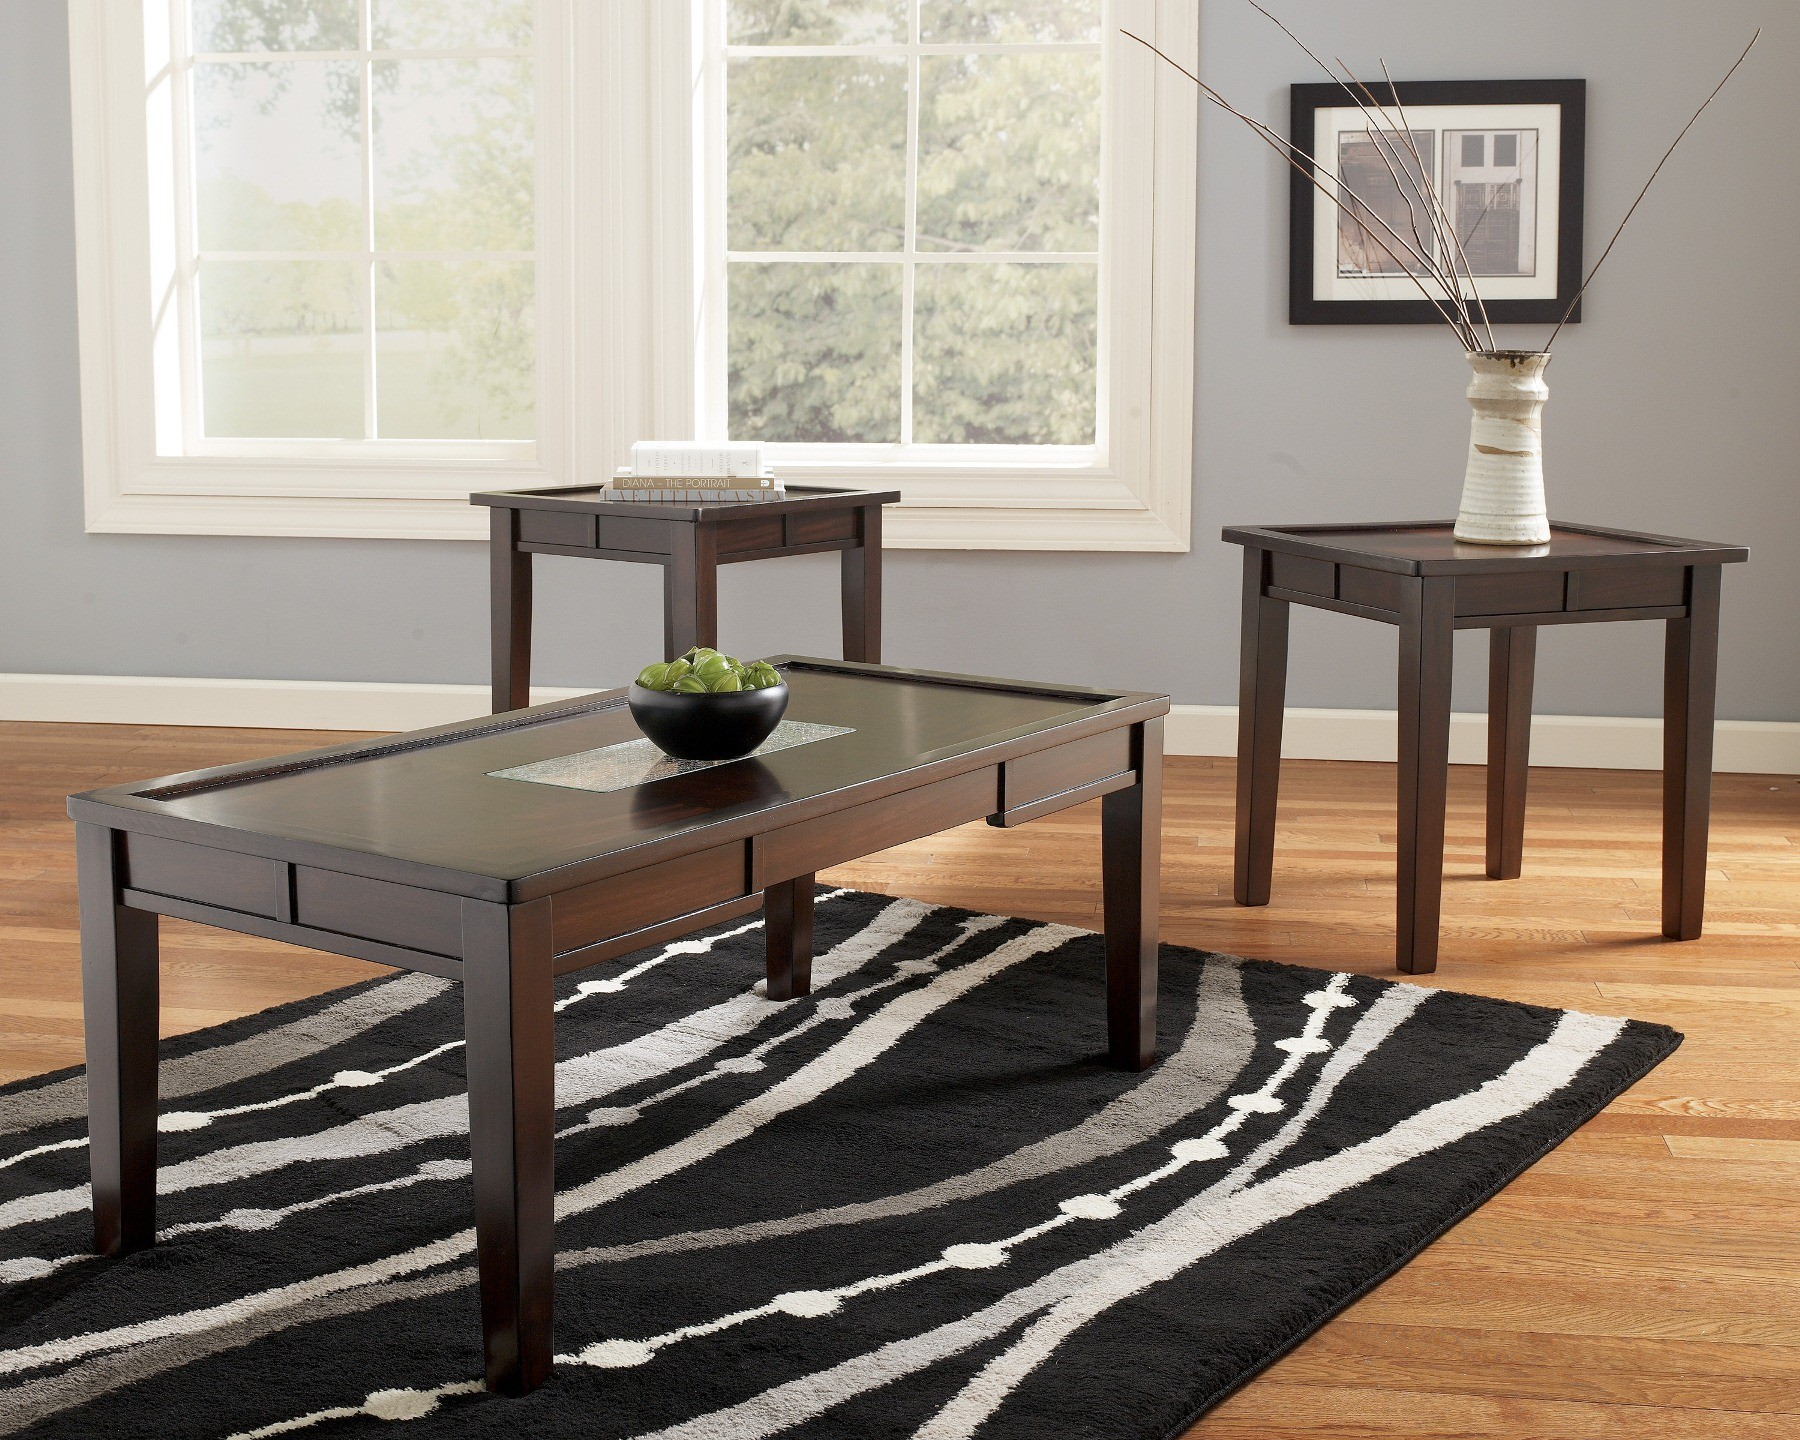 9 Best Ideas of 3 Piece End Table Coffee Table Sets